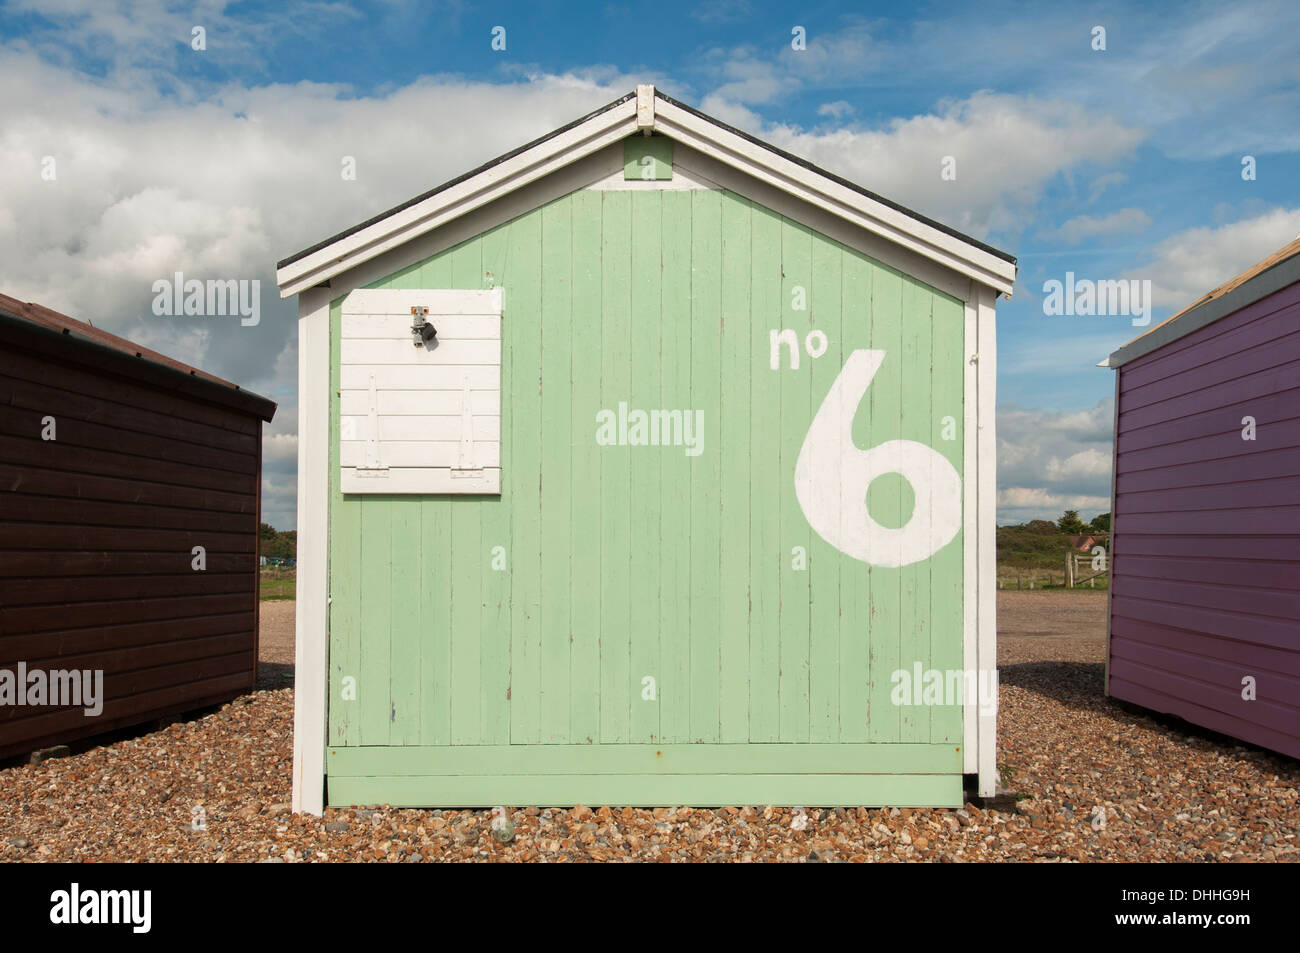 green beach hut with the number 6 - Stock Image